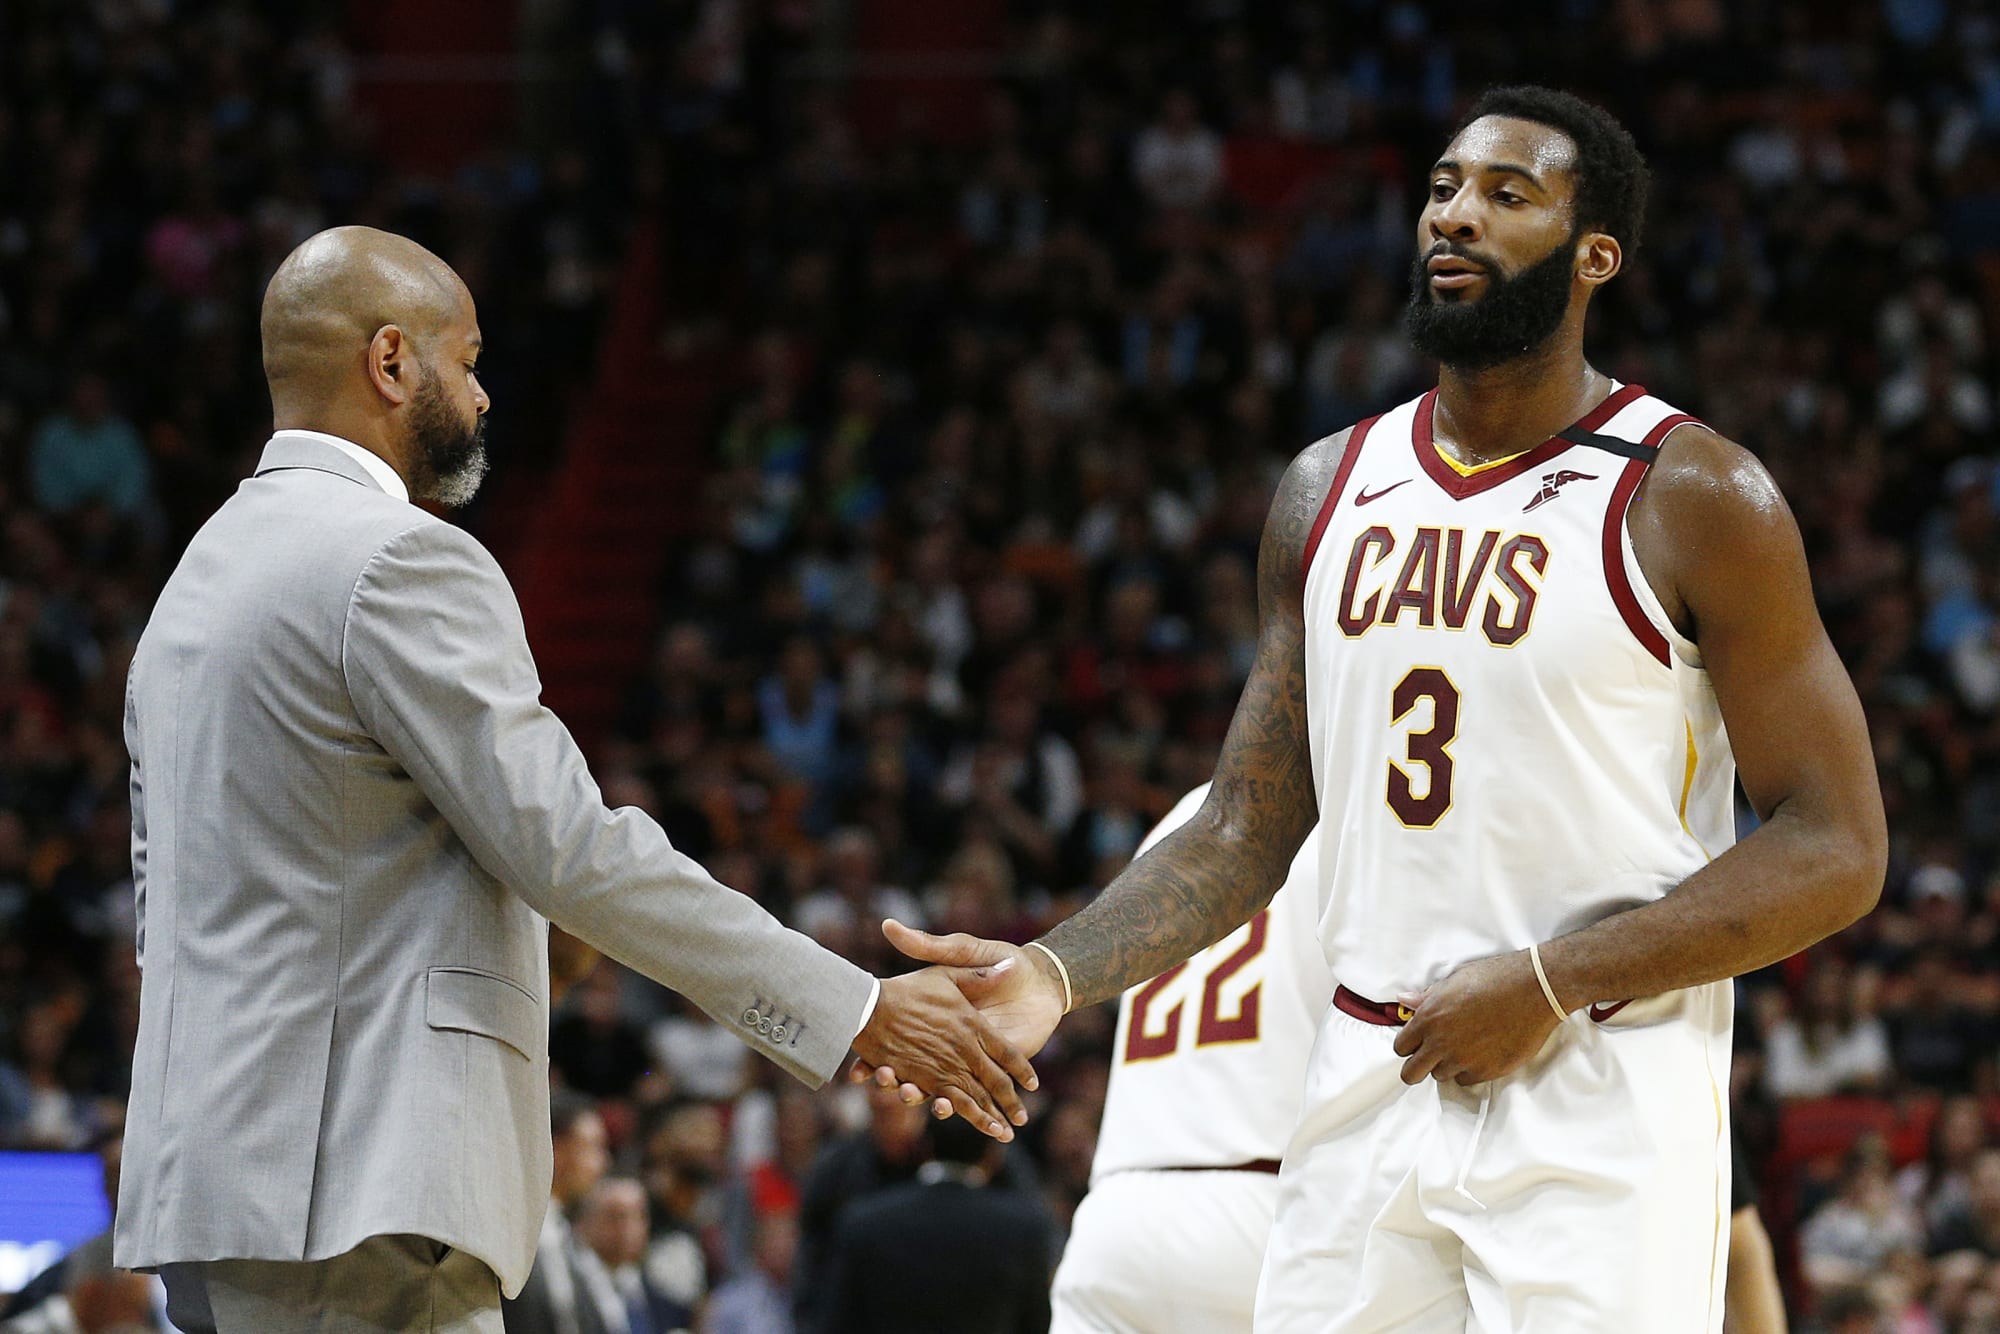 Andre Drummond is likely Cavs' third option for 2020-21, but that could change